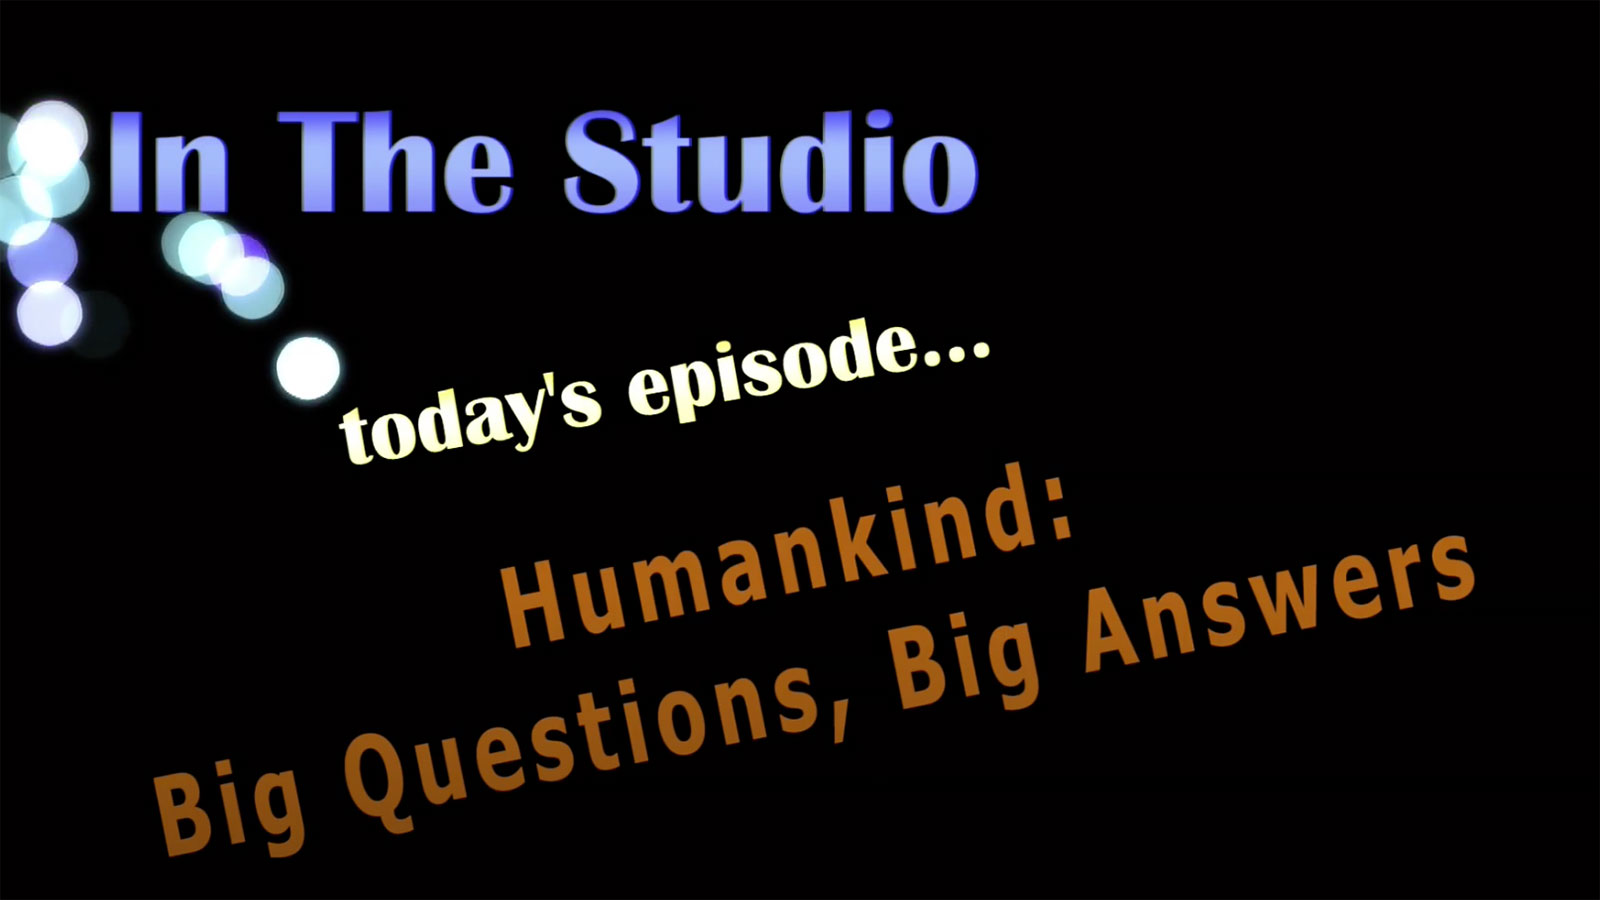 In the Studio: Humankind: Big Questions, Big Answers